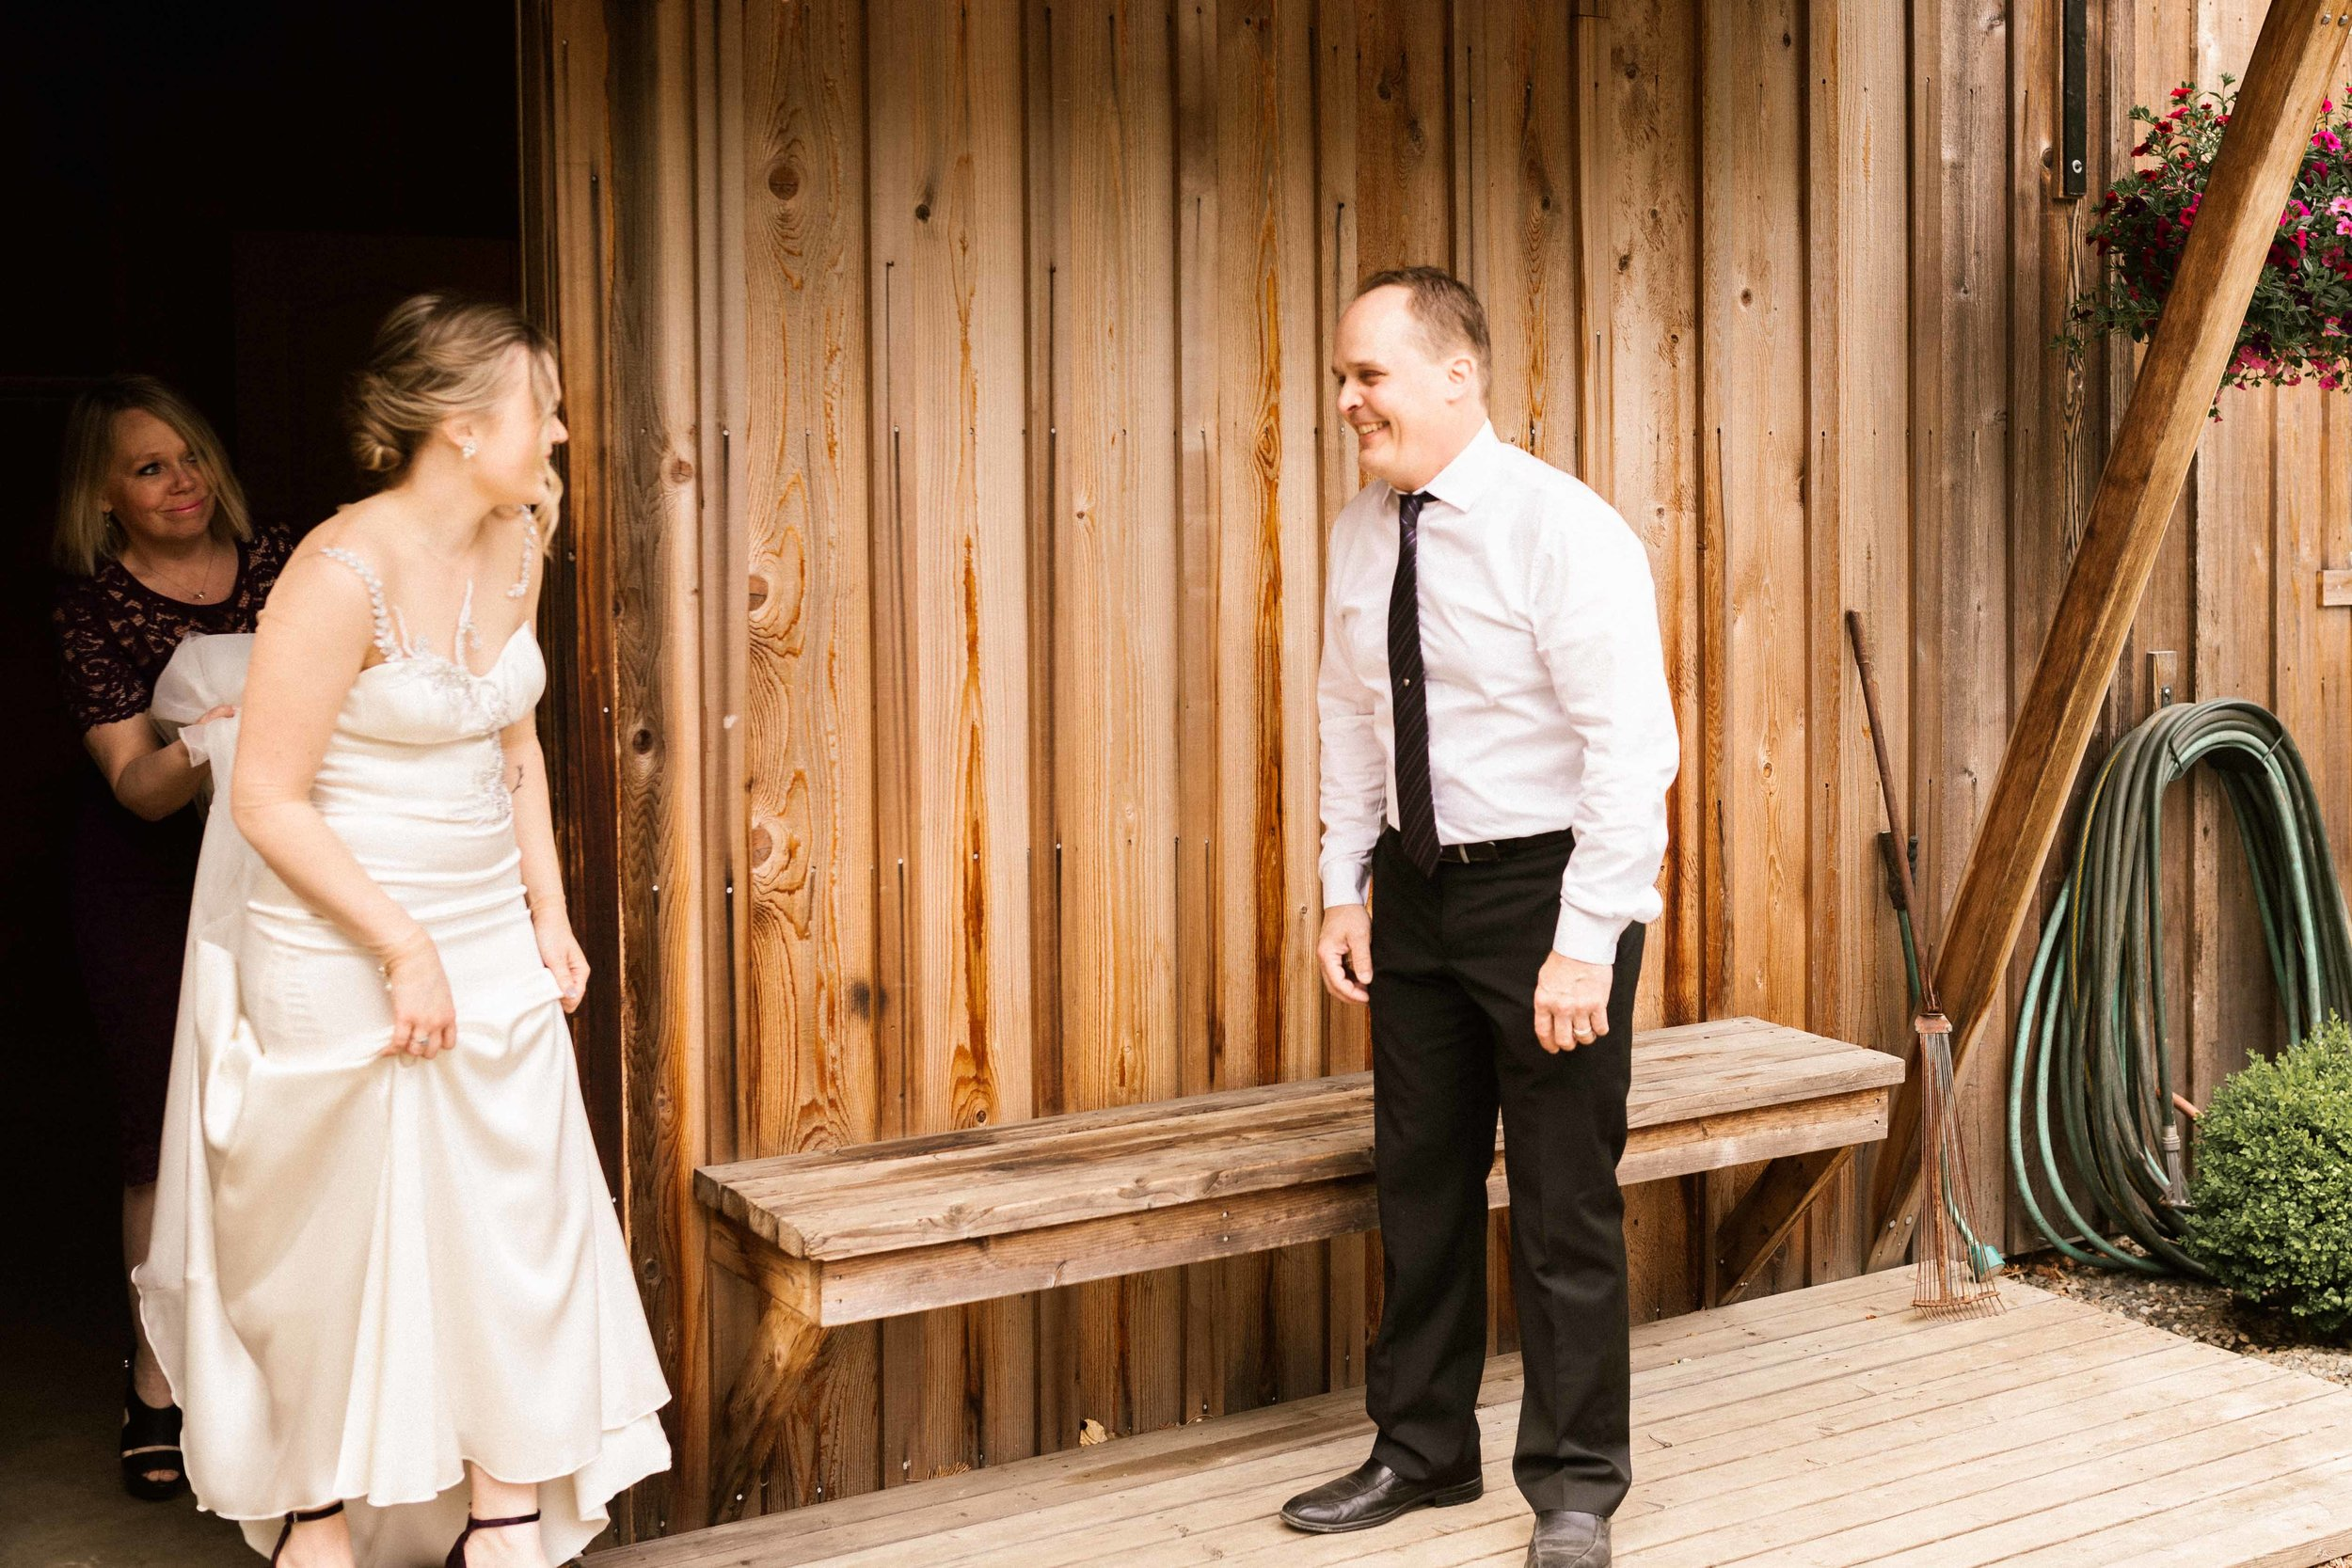 everson-barn-wedding-30.jpg